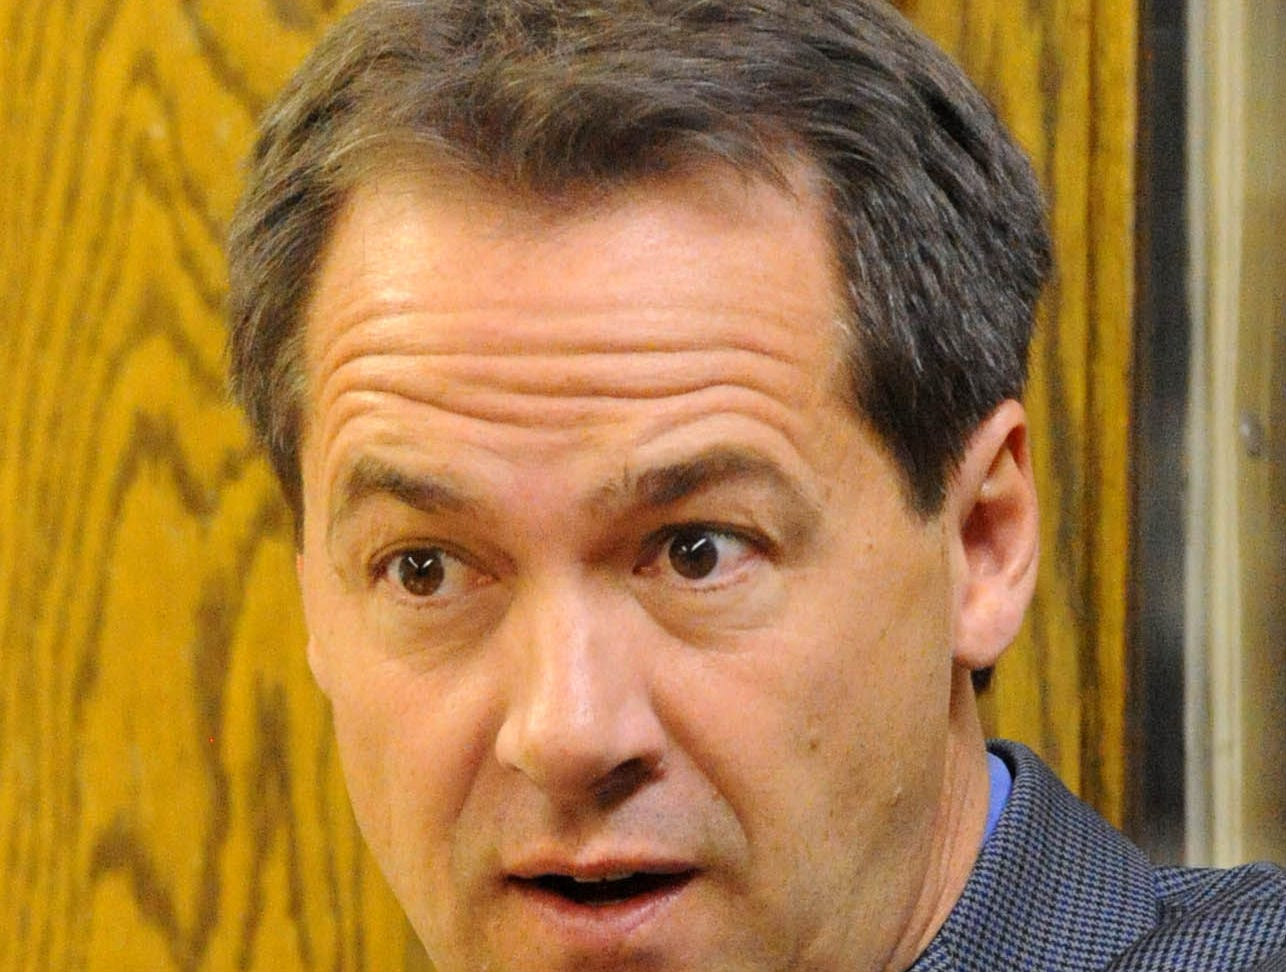 Montana gubernatorial candidate Steve Bullock visits the Great Falls High School journalism class during his campaign stop in Great Falls on Friday. TRIBUNE PHOTO/RION SANDERS